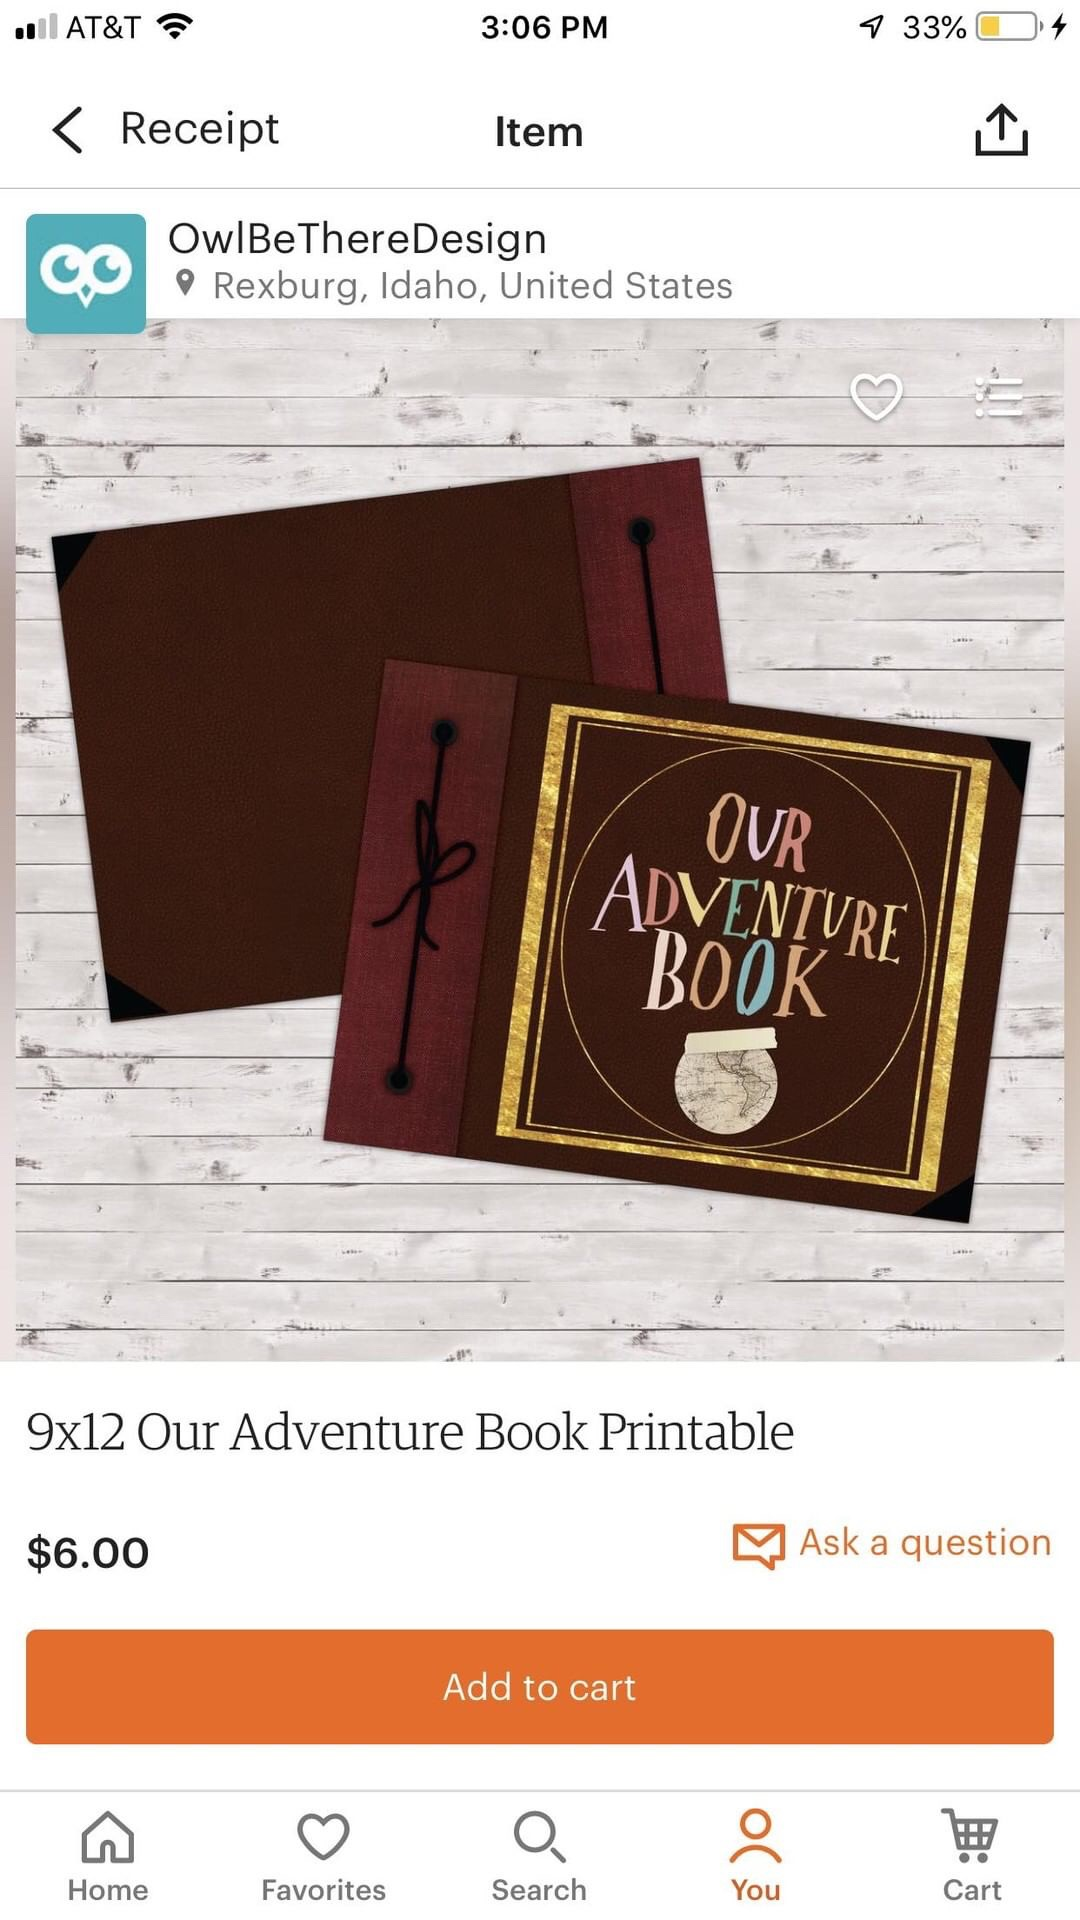 image regarding Our Adventure Book Printable named Recreating the Legendary Up Promposal: All The Information Your self Have to have